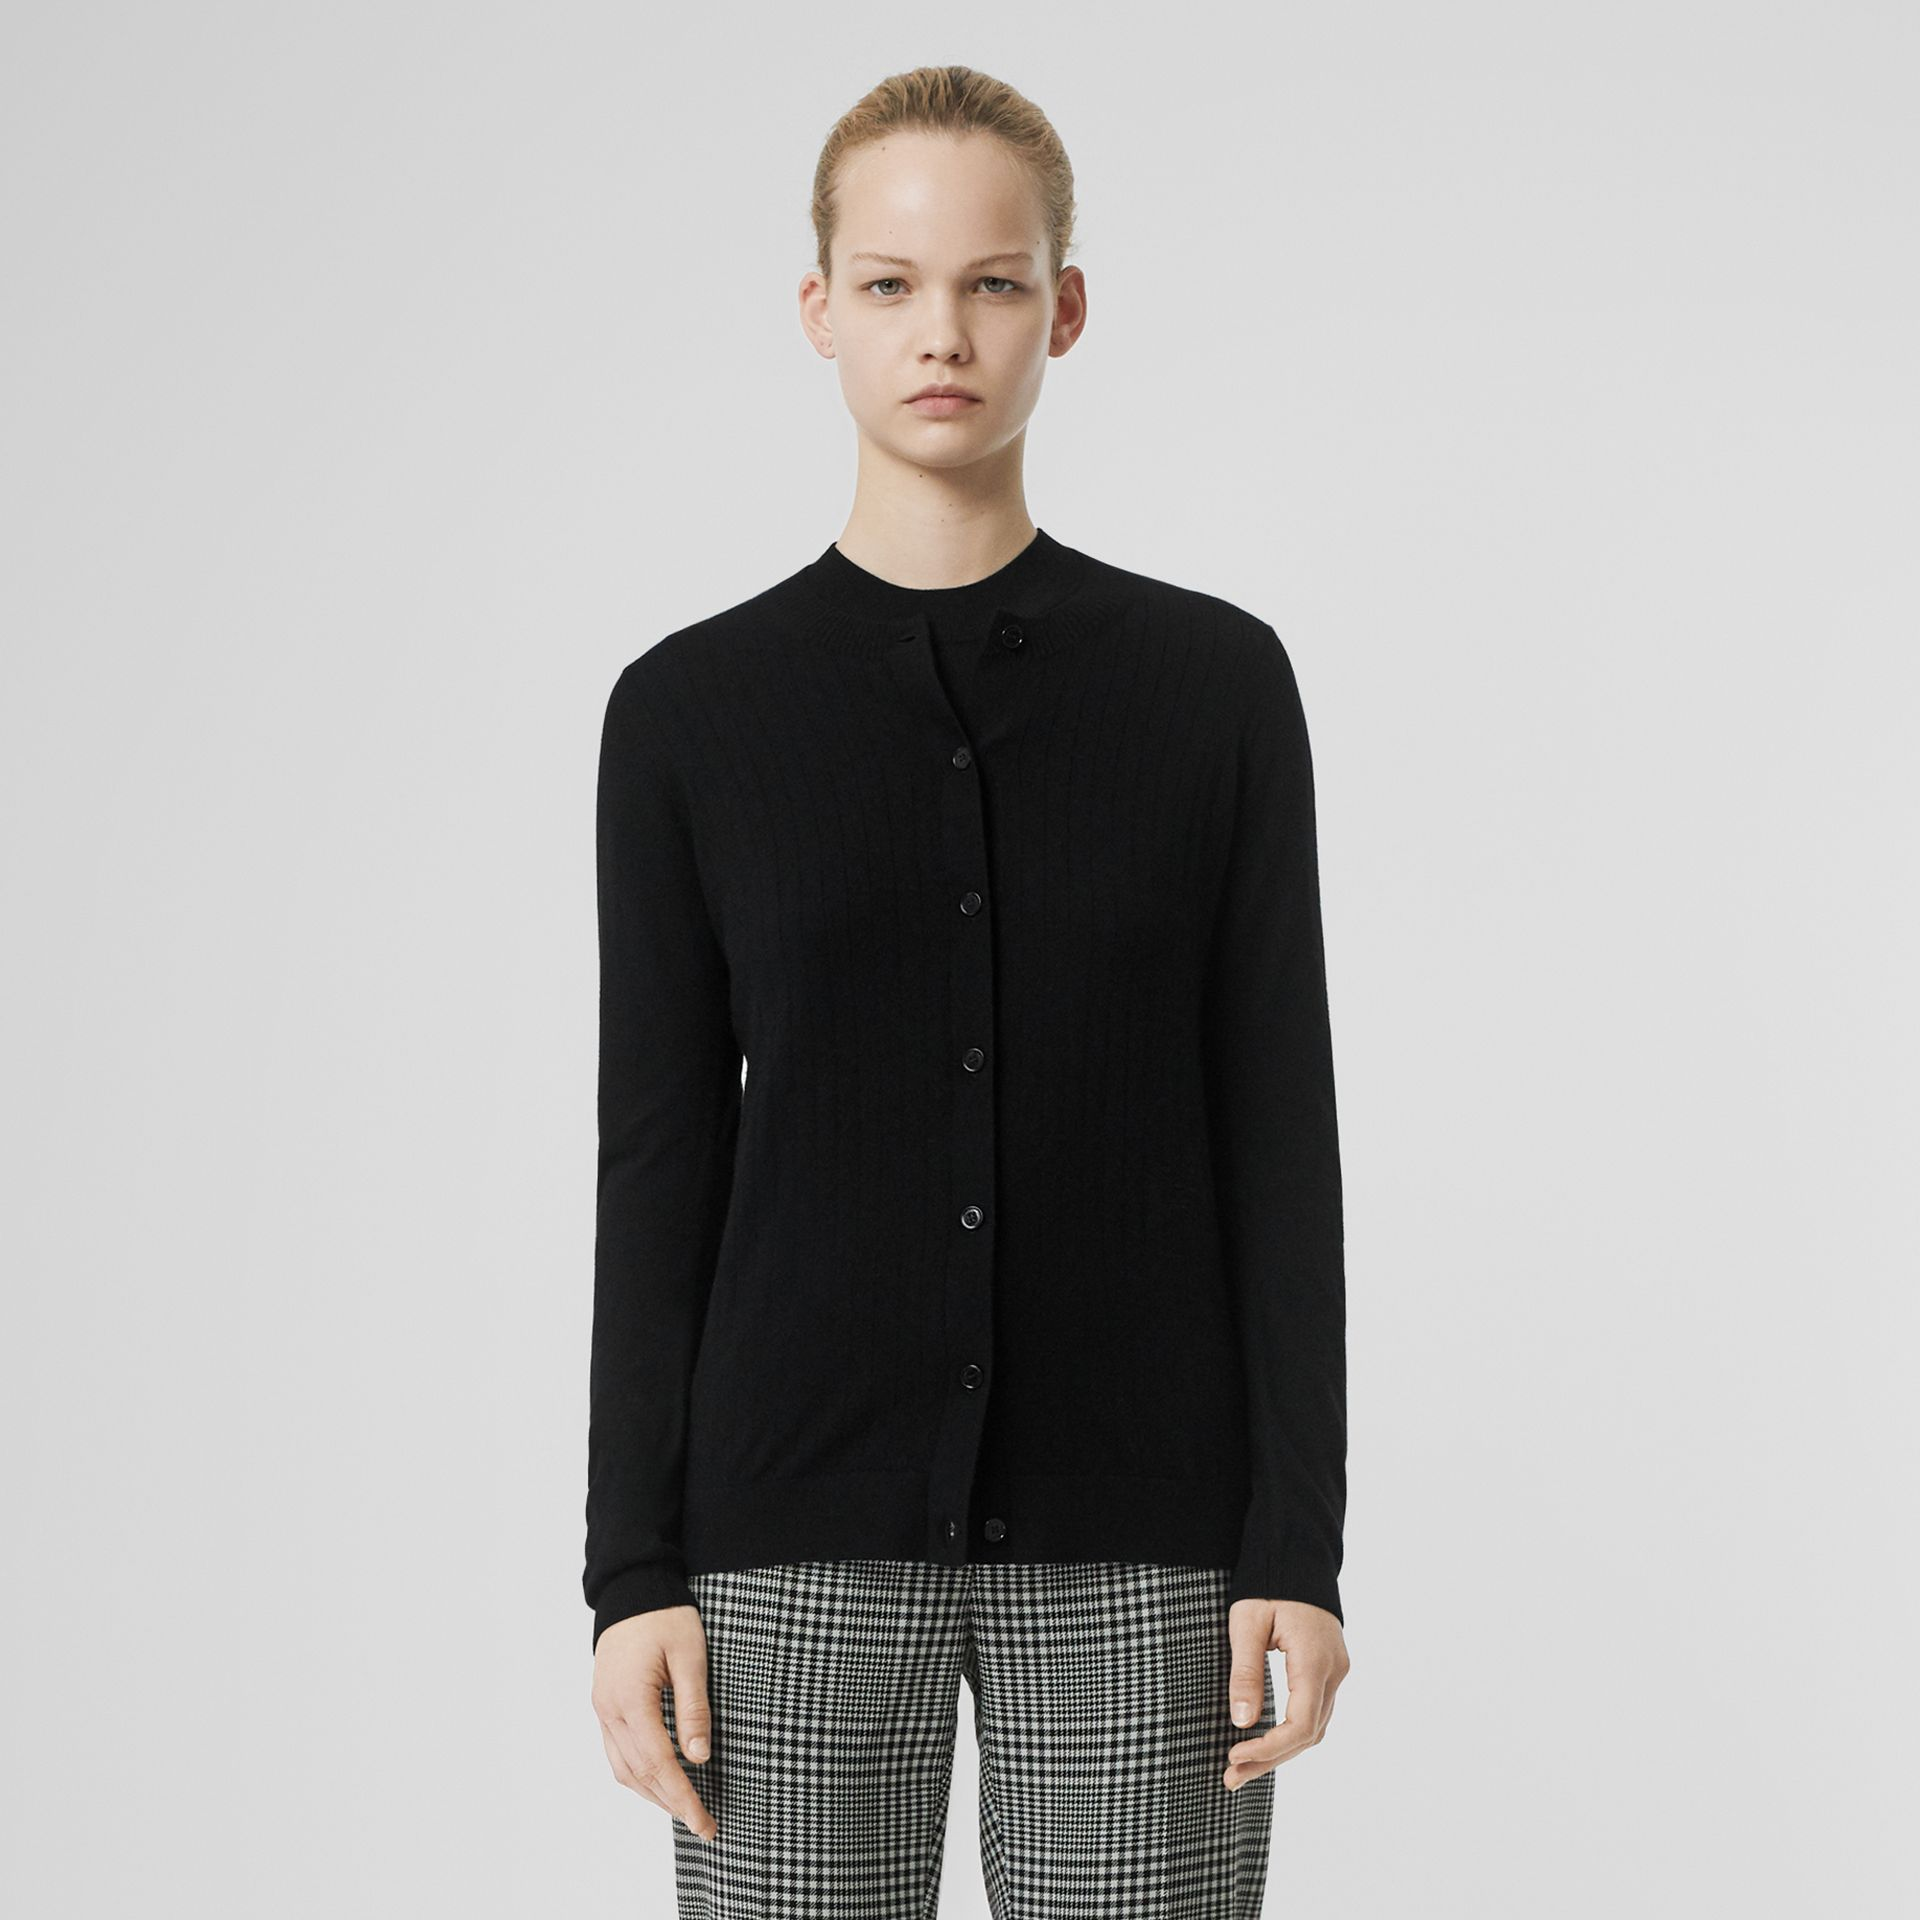 Rib Knit Cashmere Cardigan in Black - Women | Burberry - gallery image 6